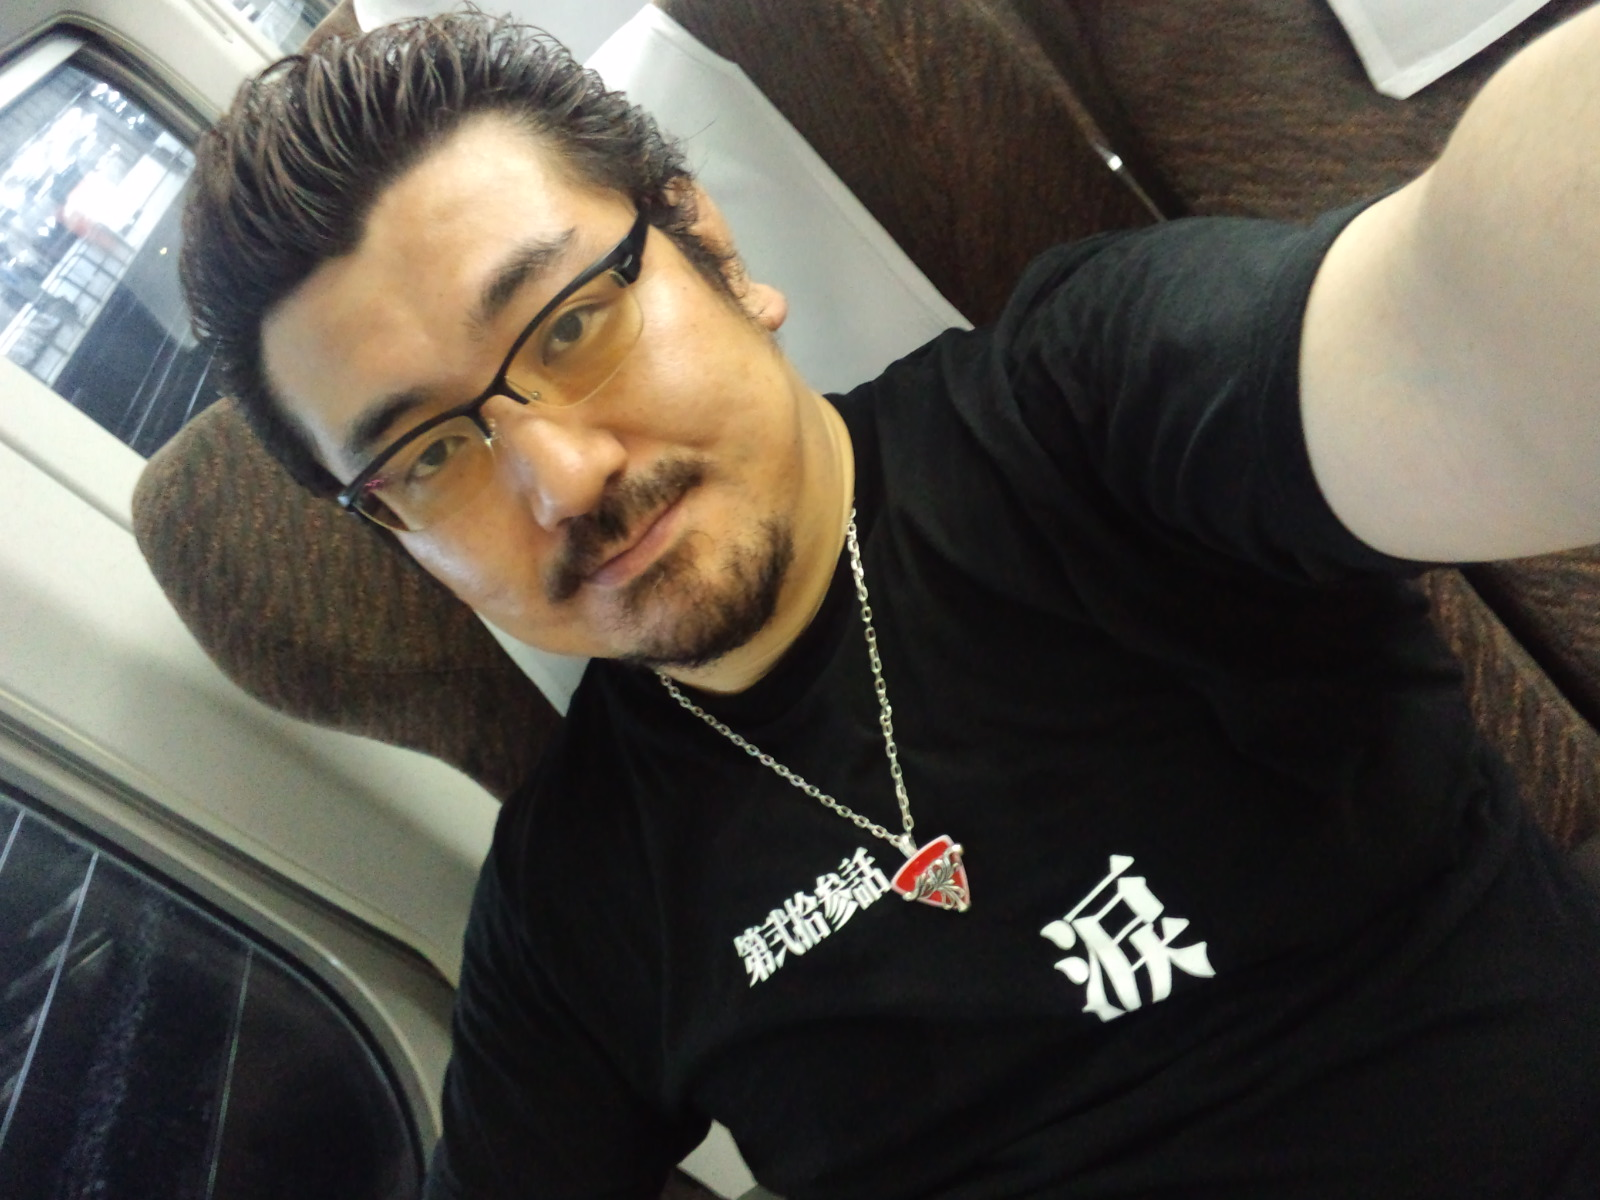 Earlier than usual.